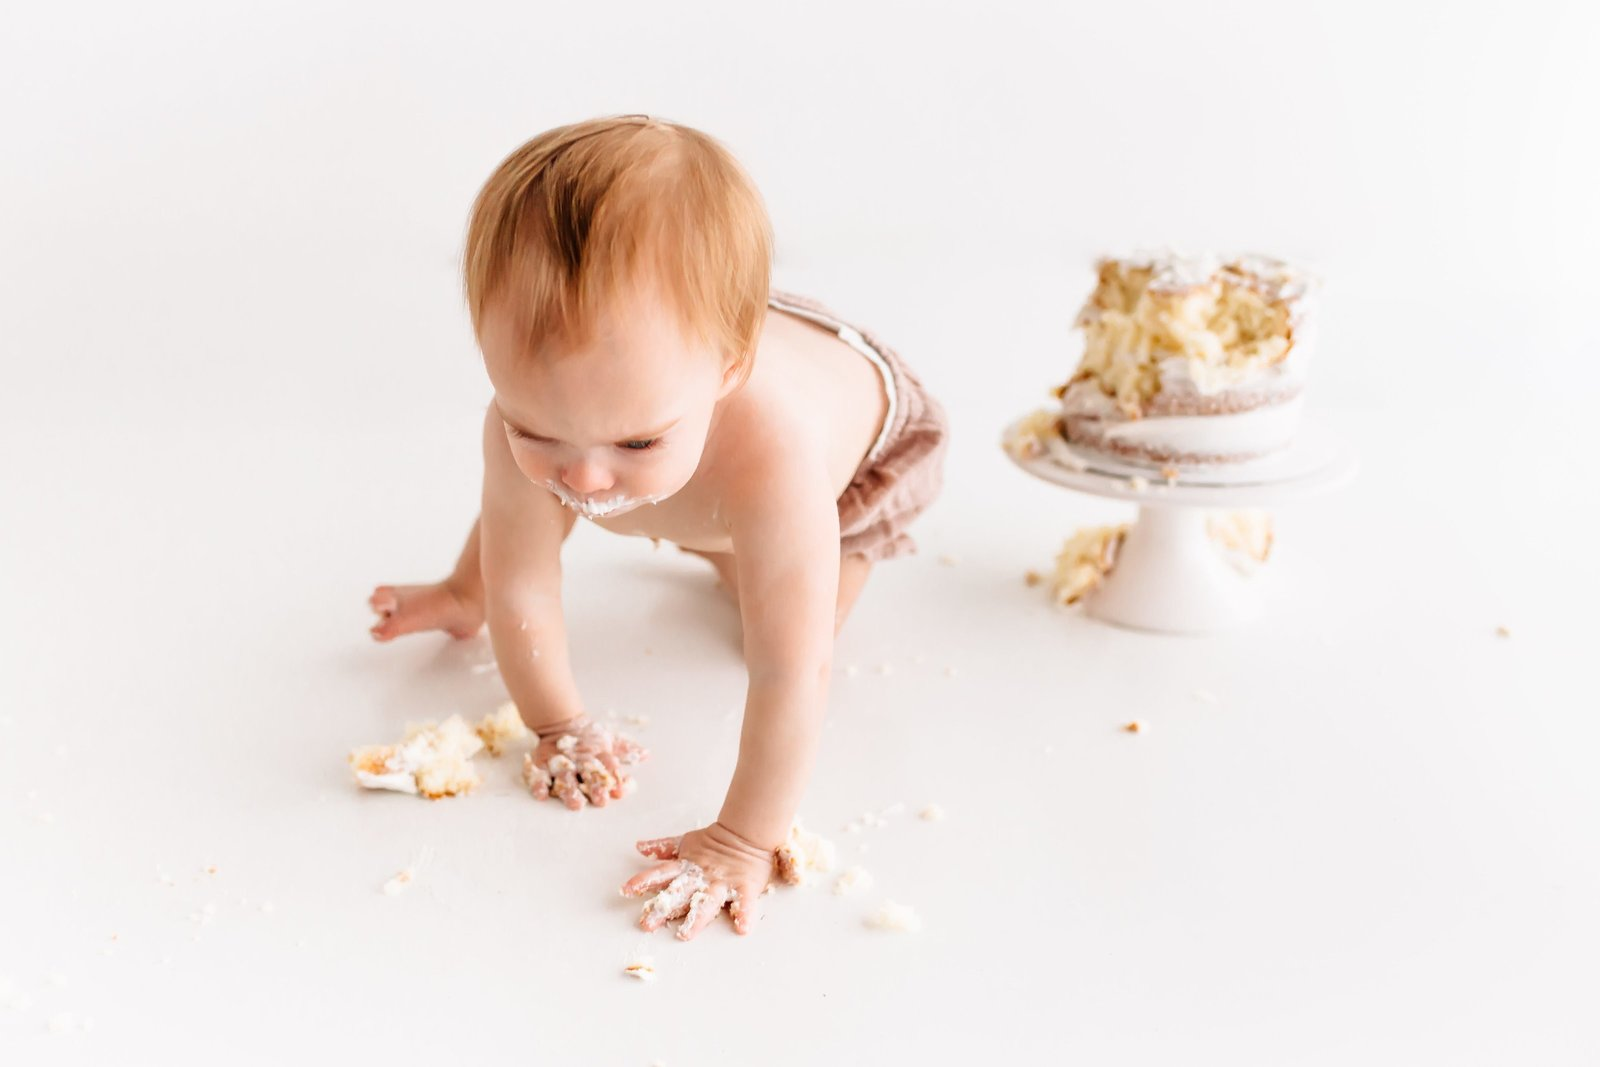 St_Louis_Baby_Photographer_Kelly_Laramore_Photography_111